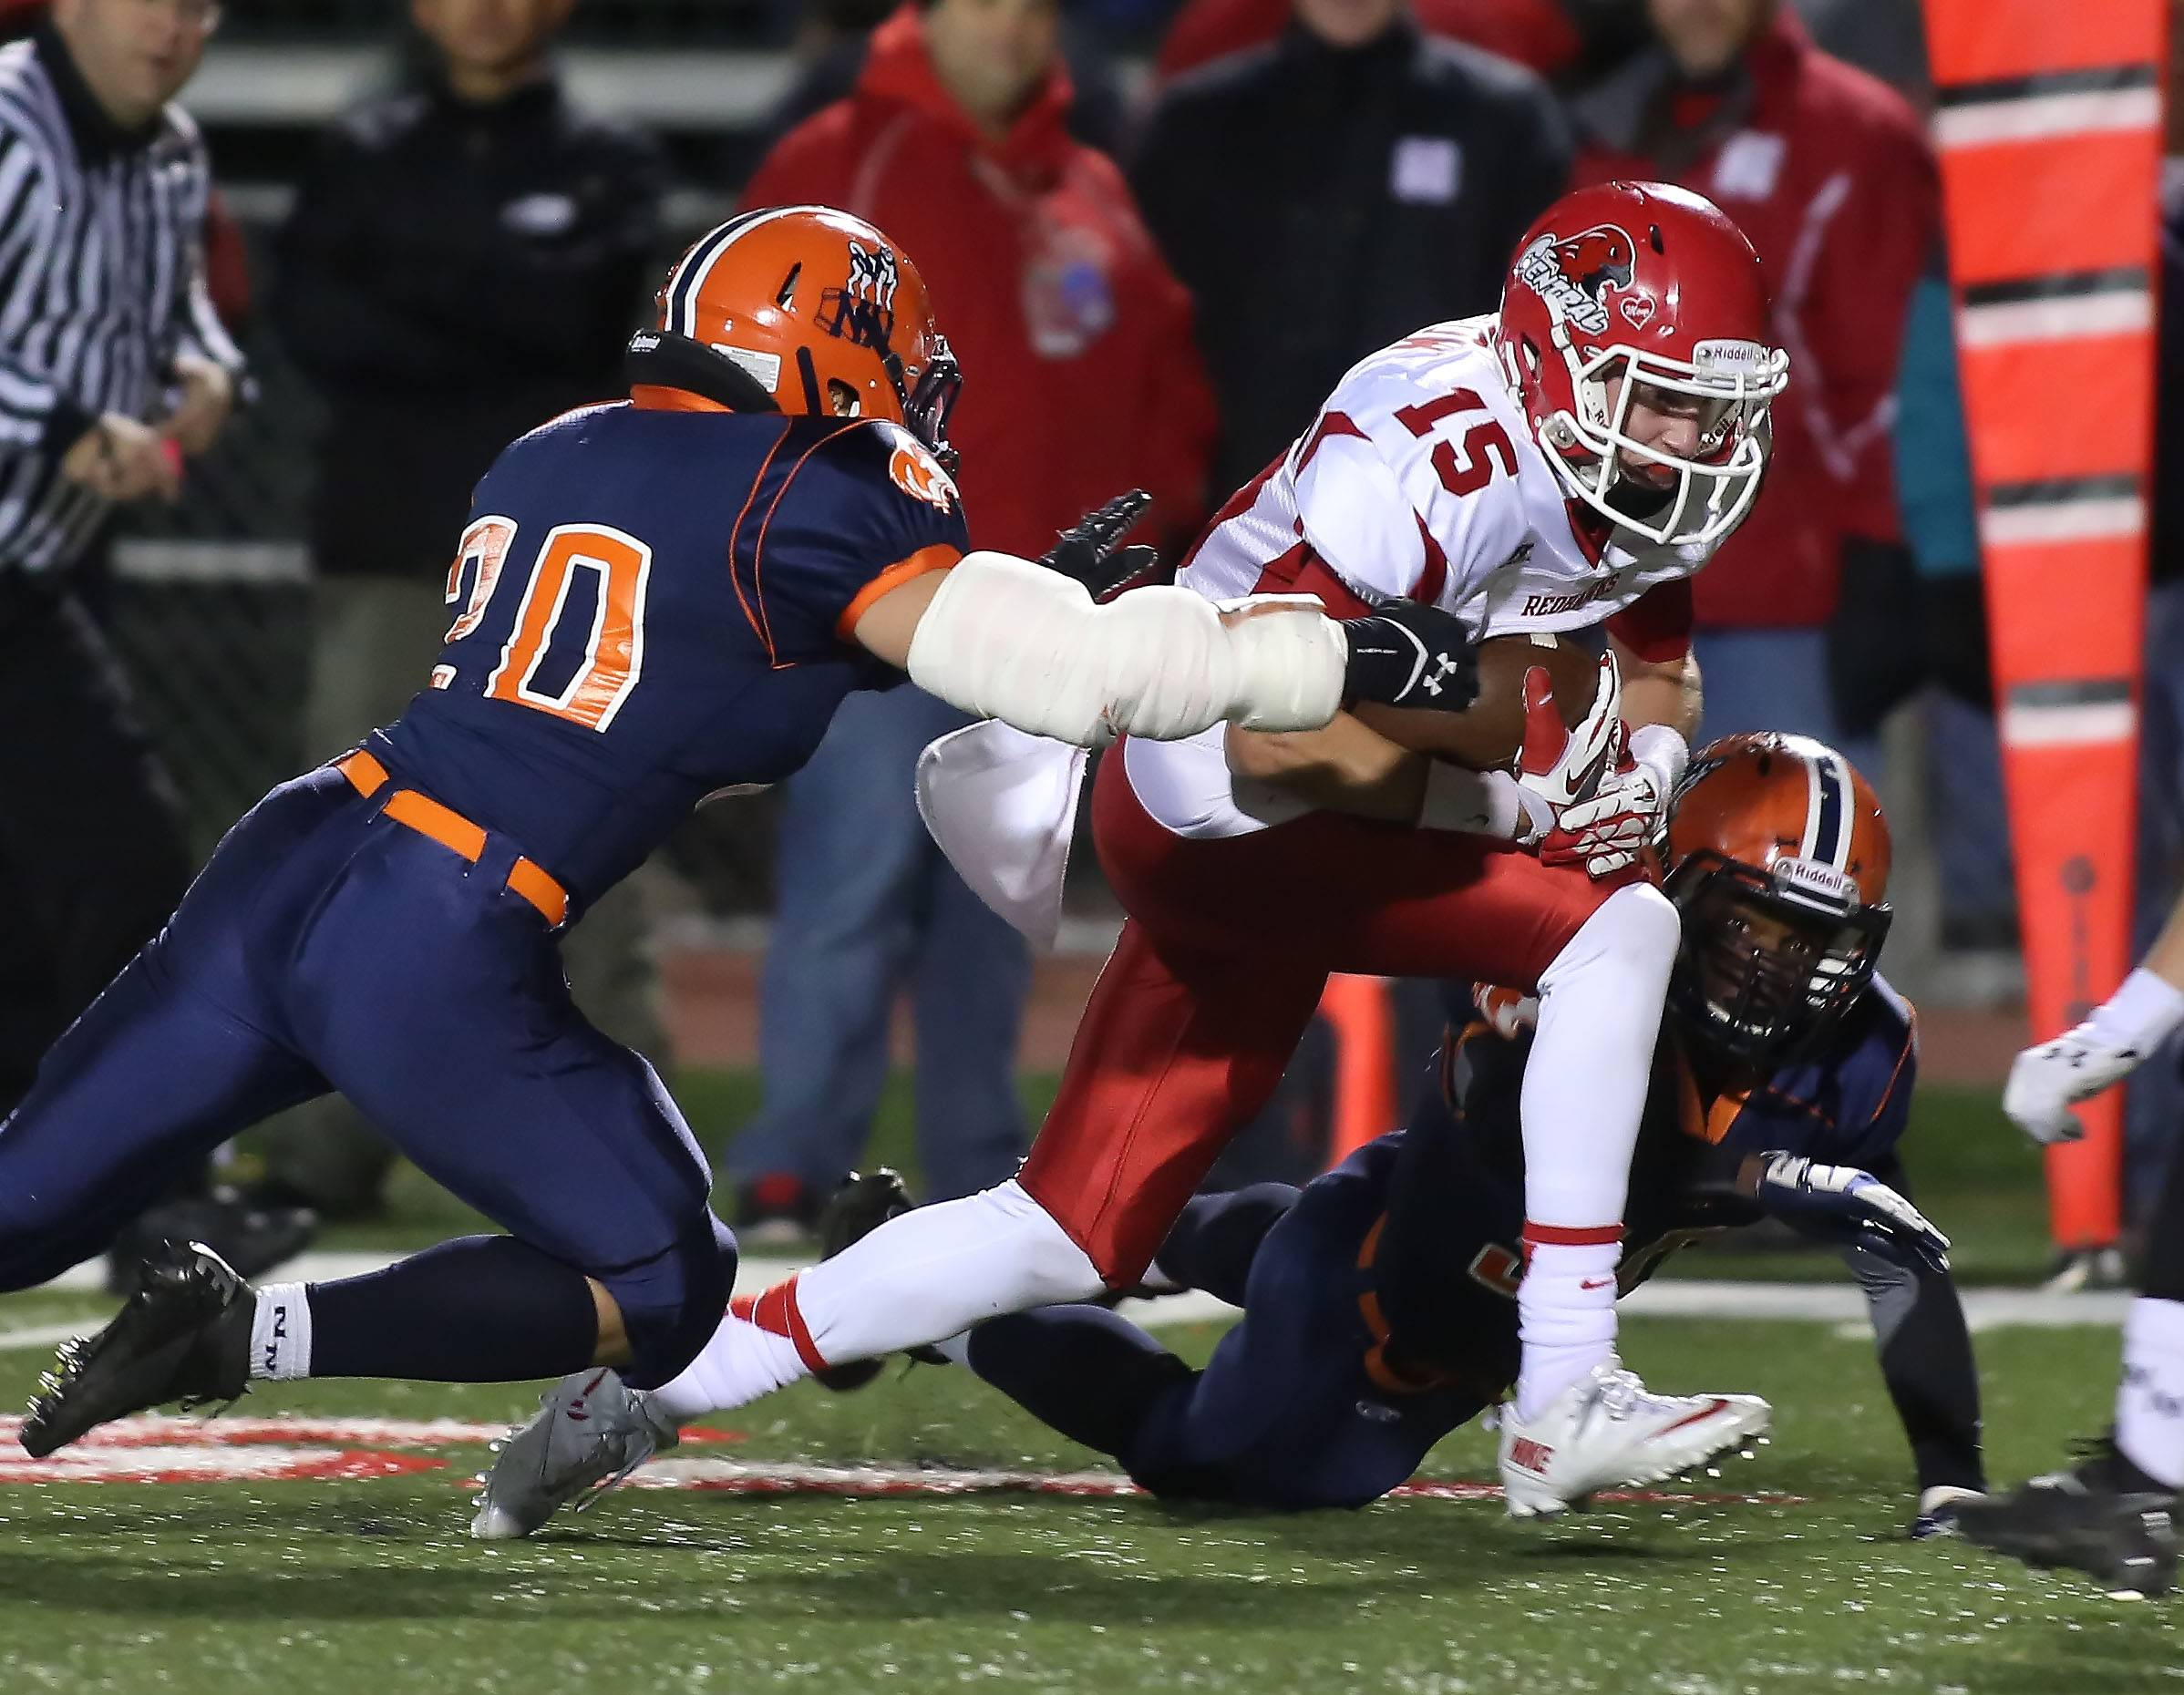 Naperville Central's Kolzow makes his best catch yet